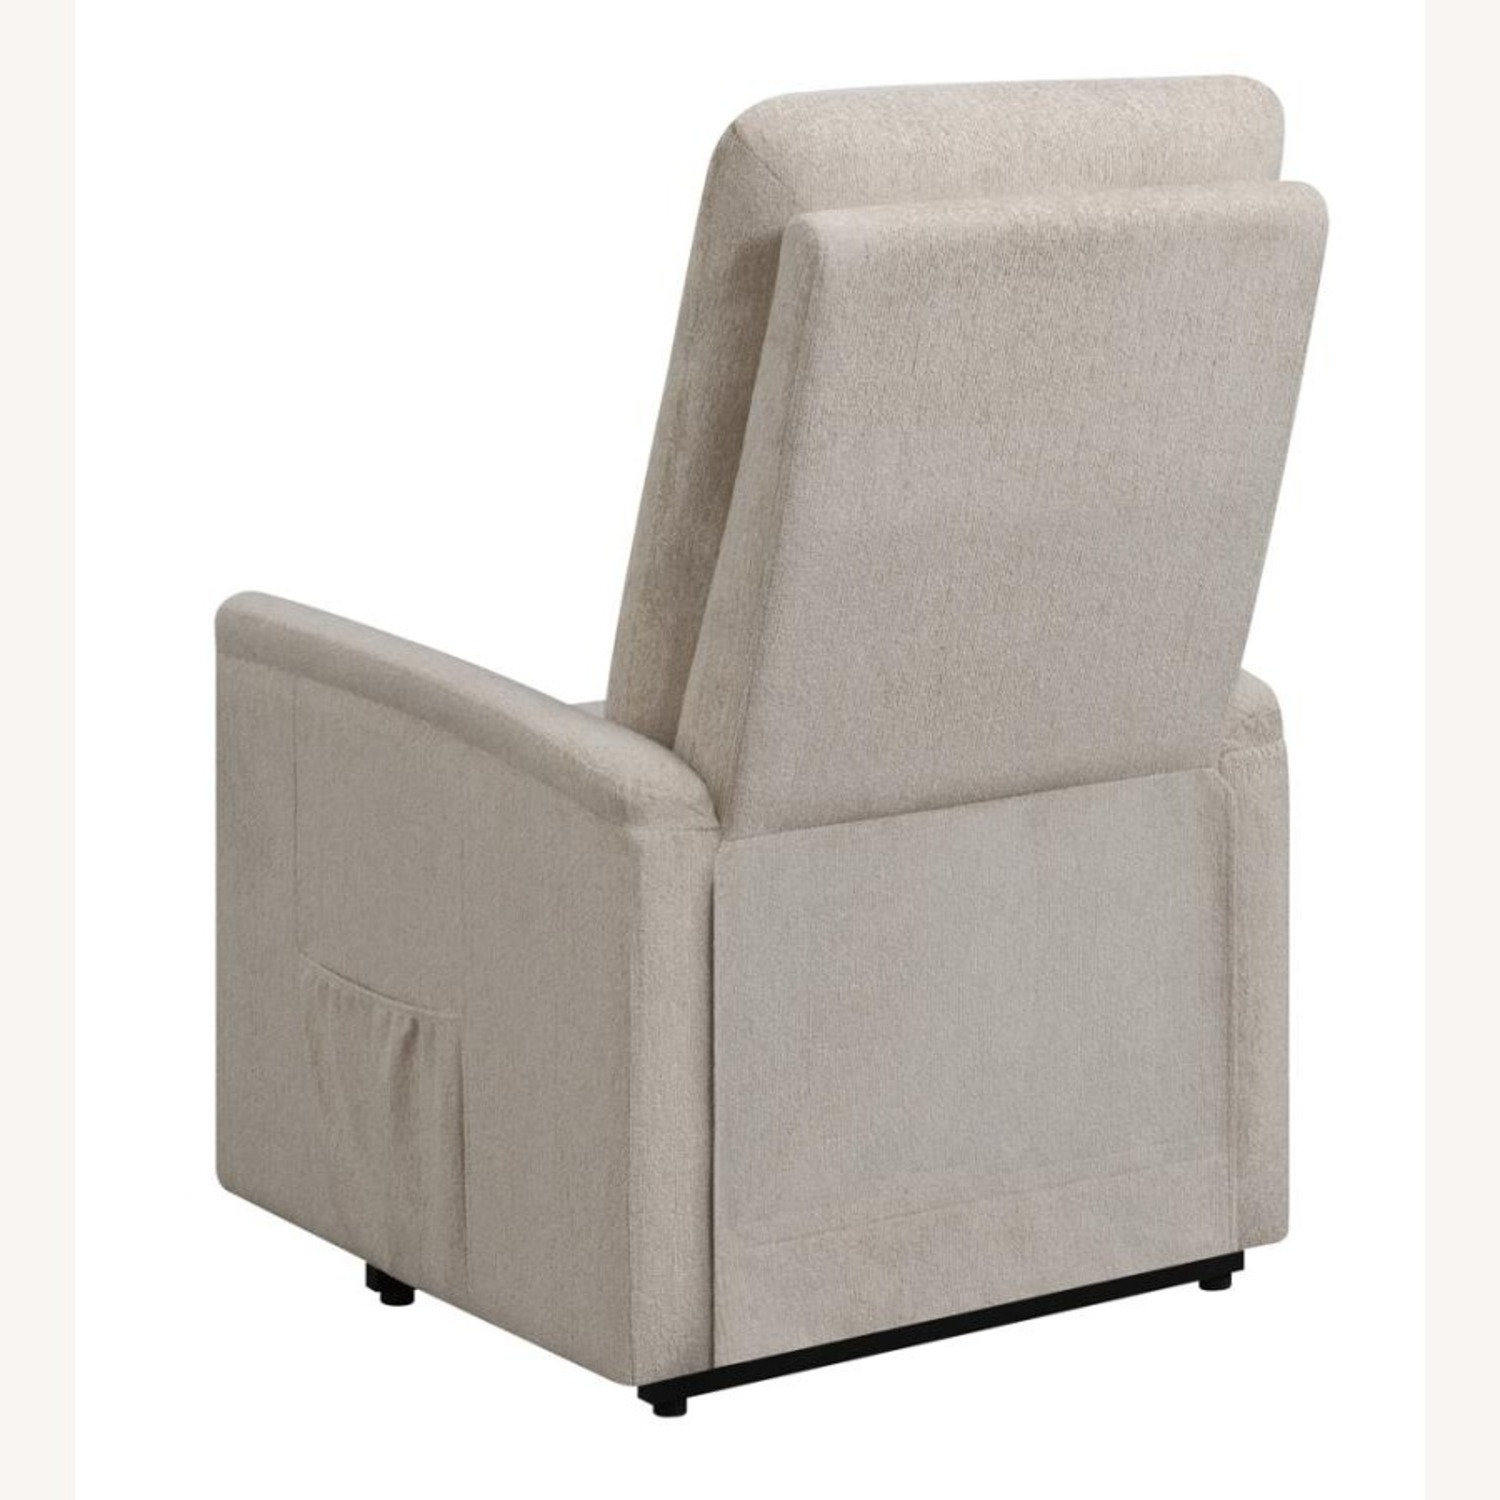 Power Lift Massage Chair In Beige Fabric - image-5